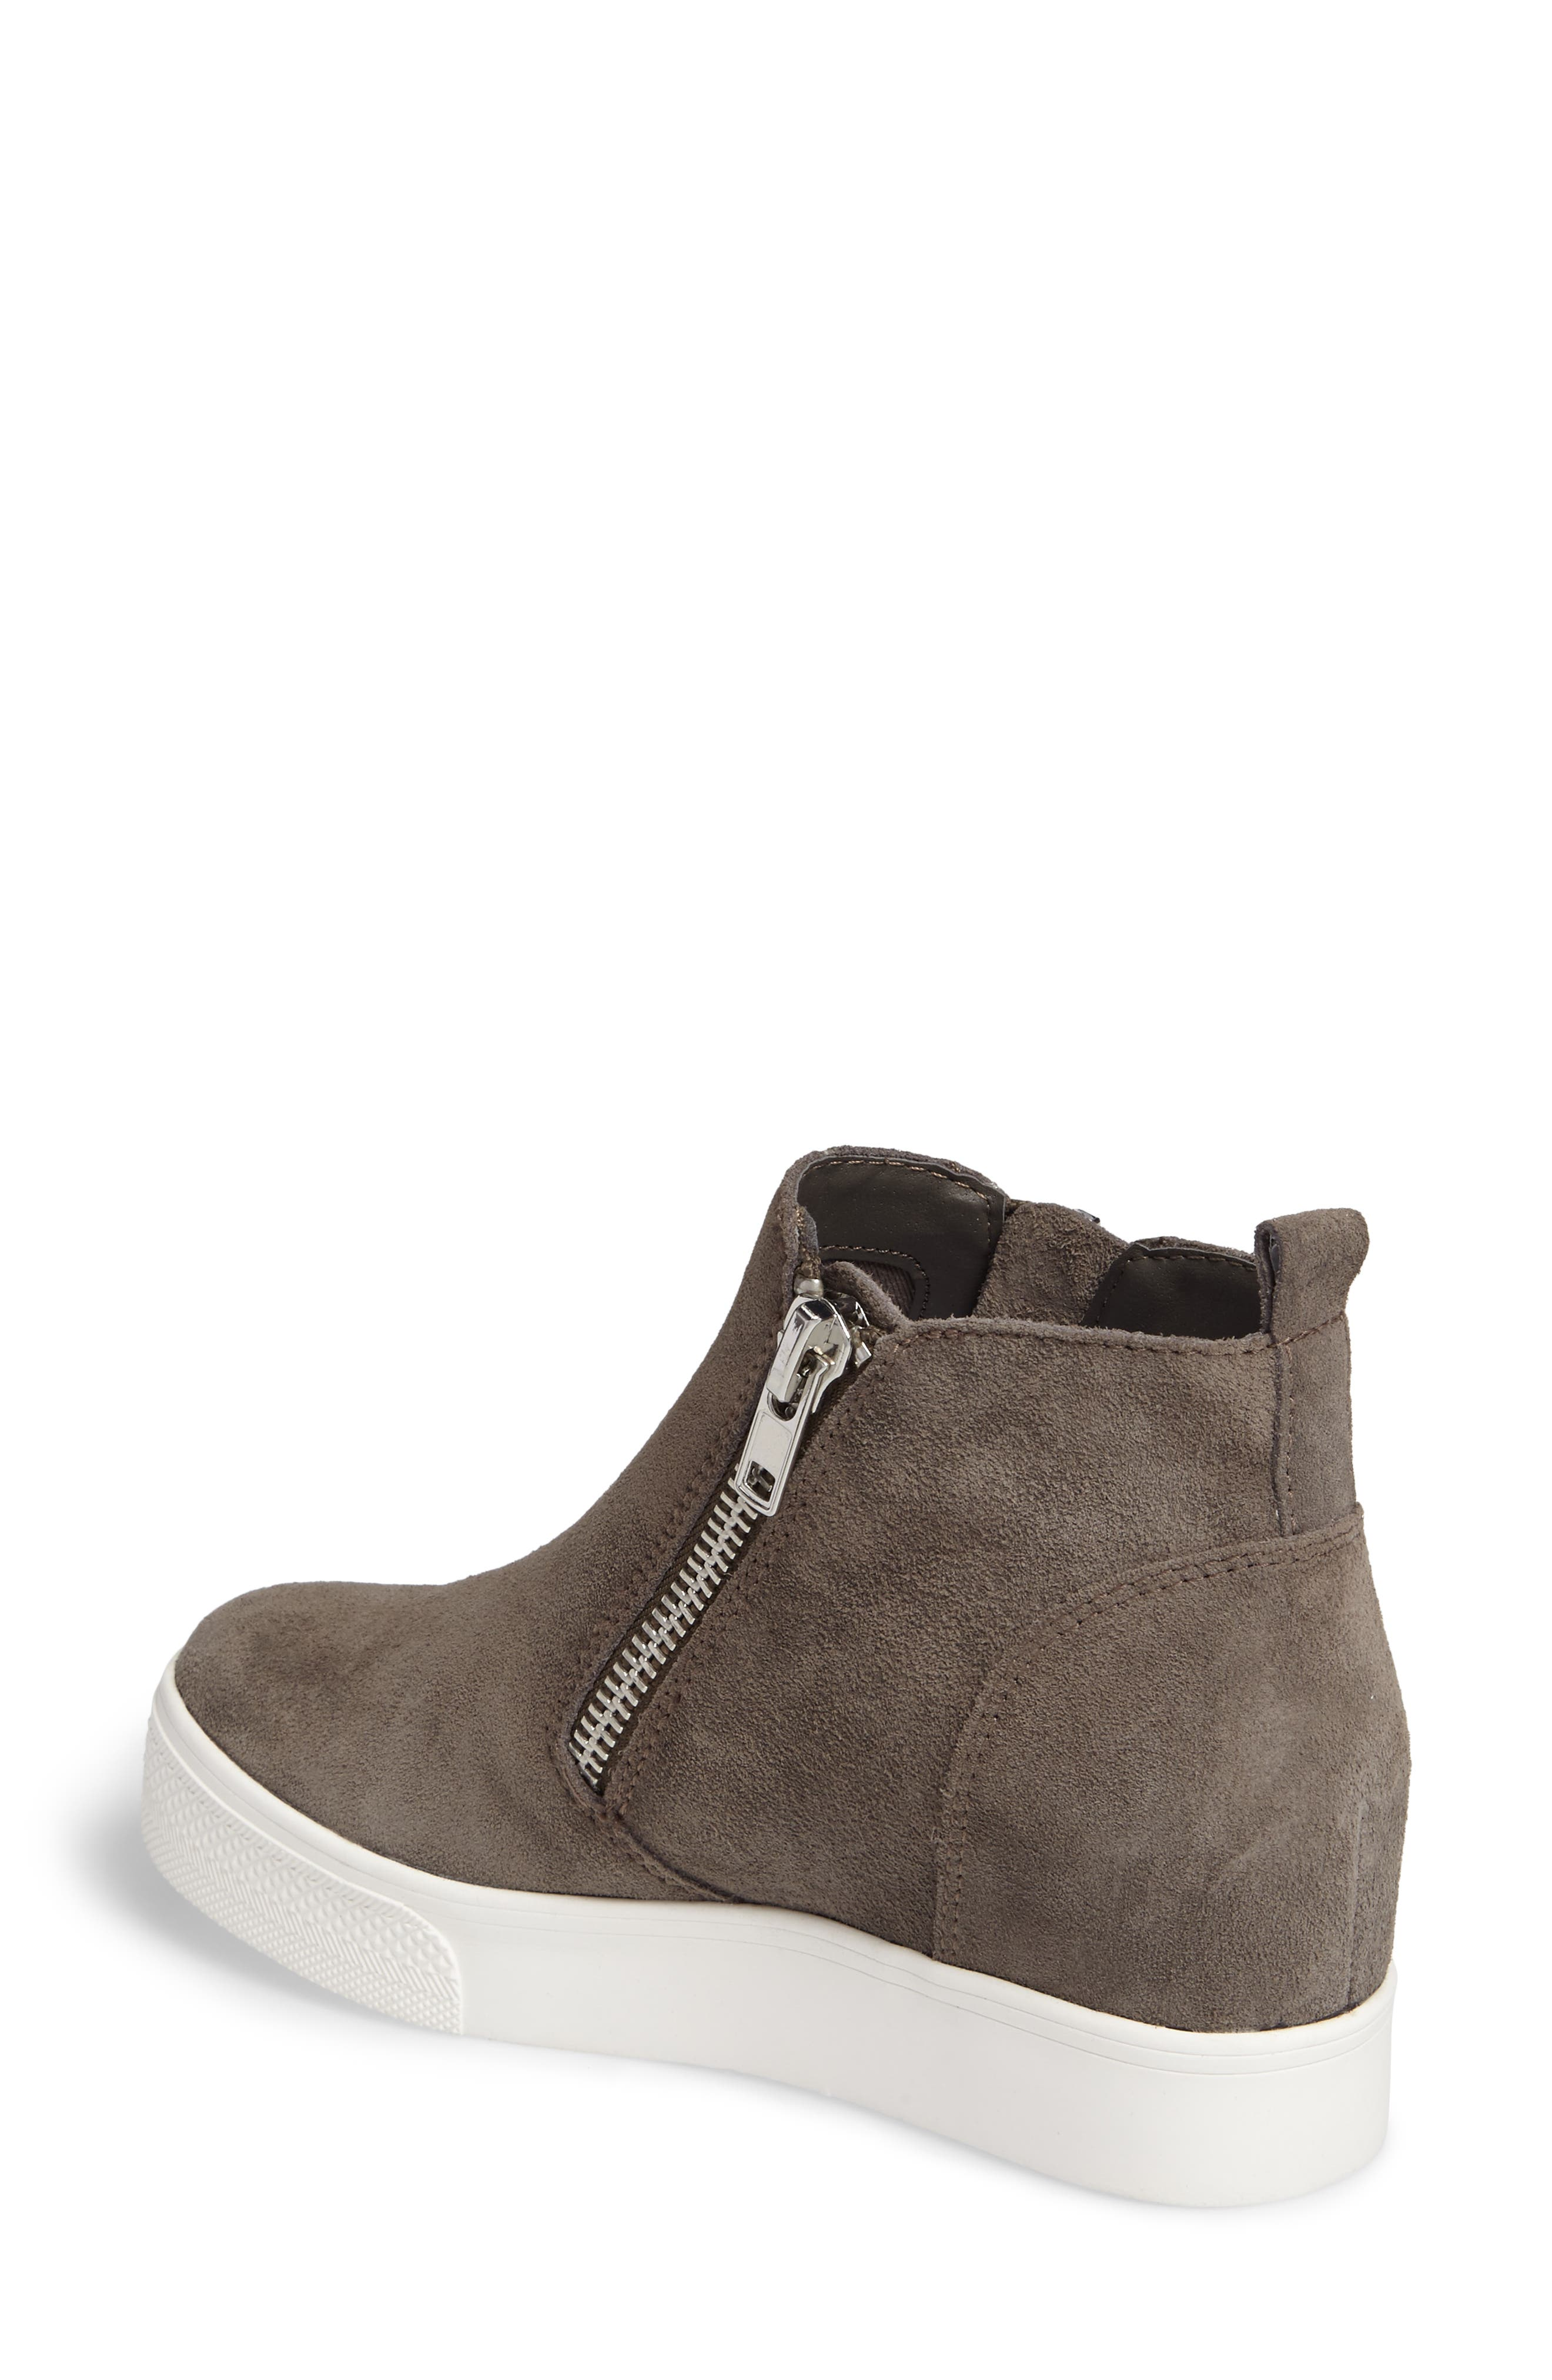 Alternate Image 2  - Steve Madden Wedgie High Top Platform Sneaker (Women)